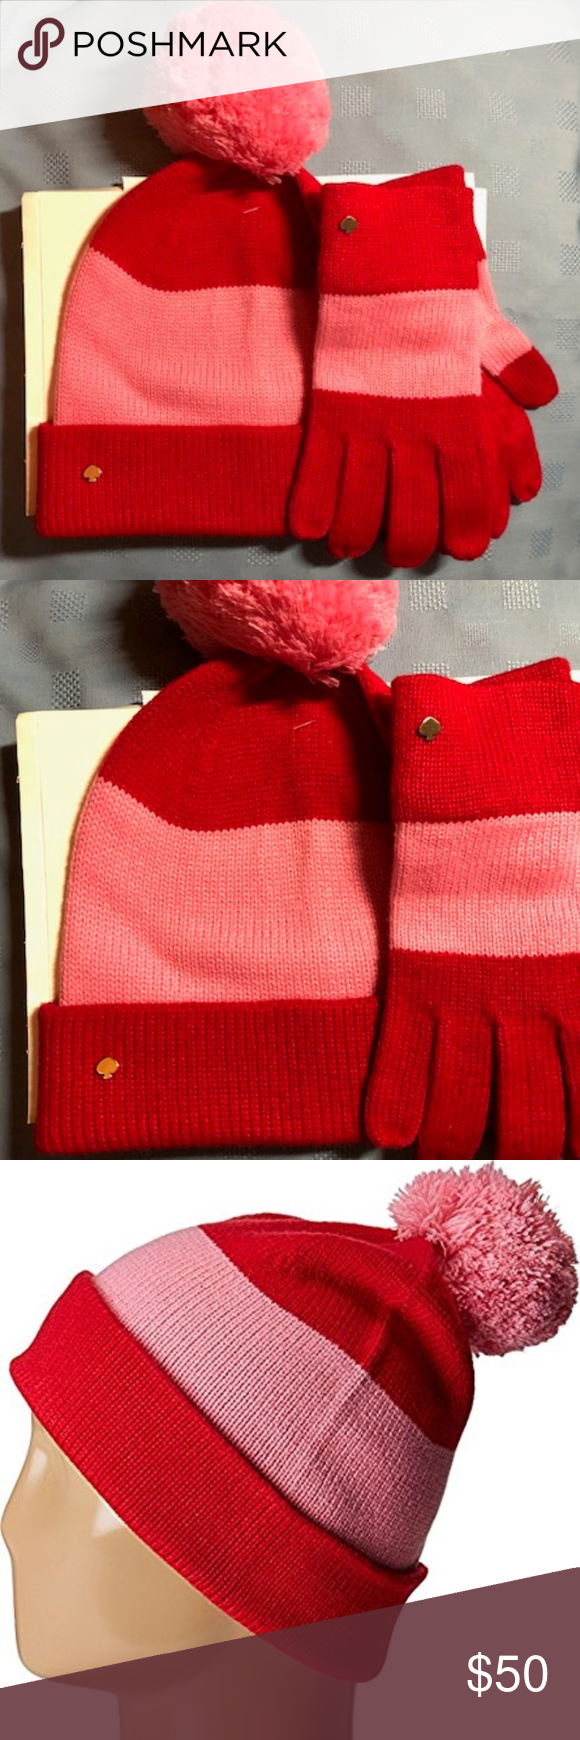 f40a776fbf214 Kate Spade Color Block Beanie and gloves. Kate Spade New York Womens Color Block  Beanie